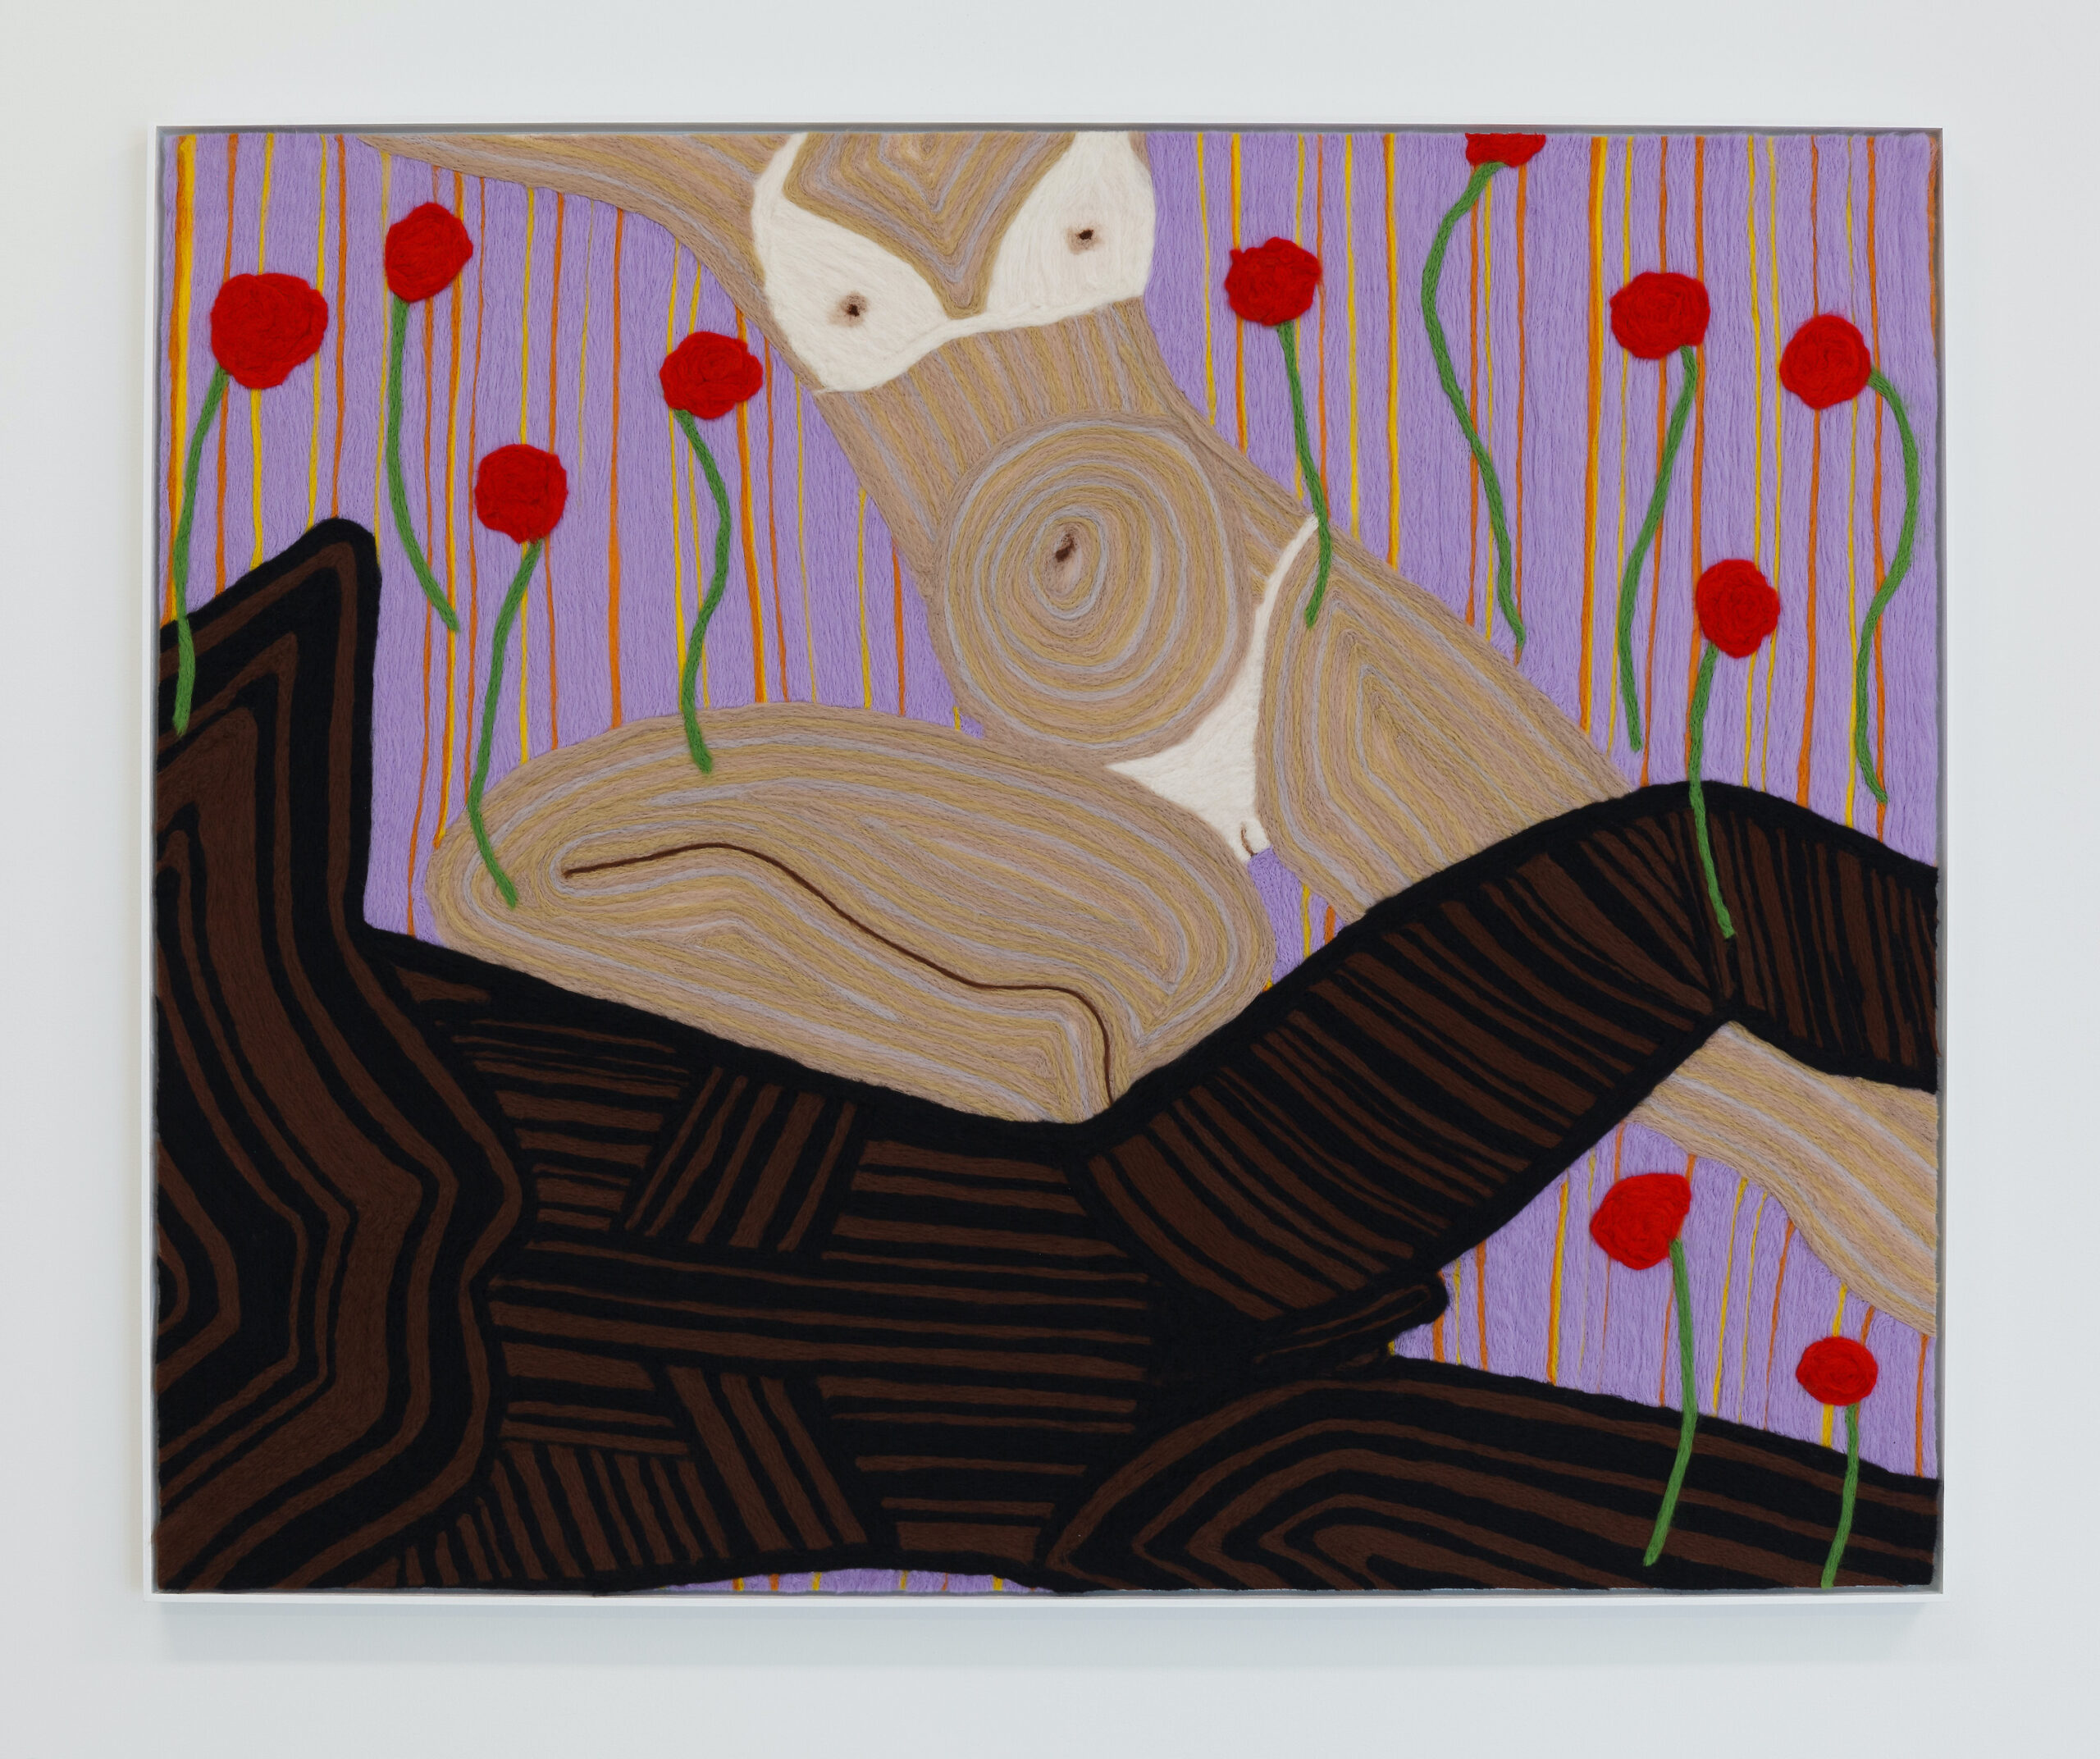 Cheryl Pope, Woman and Man Reclining on Striped Mat XVII, 2020, Needle punched wood roving on cashmere, painted wood frame, 49 x 61 inches, Emerson Dorsch, Miami FL